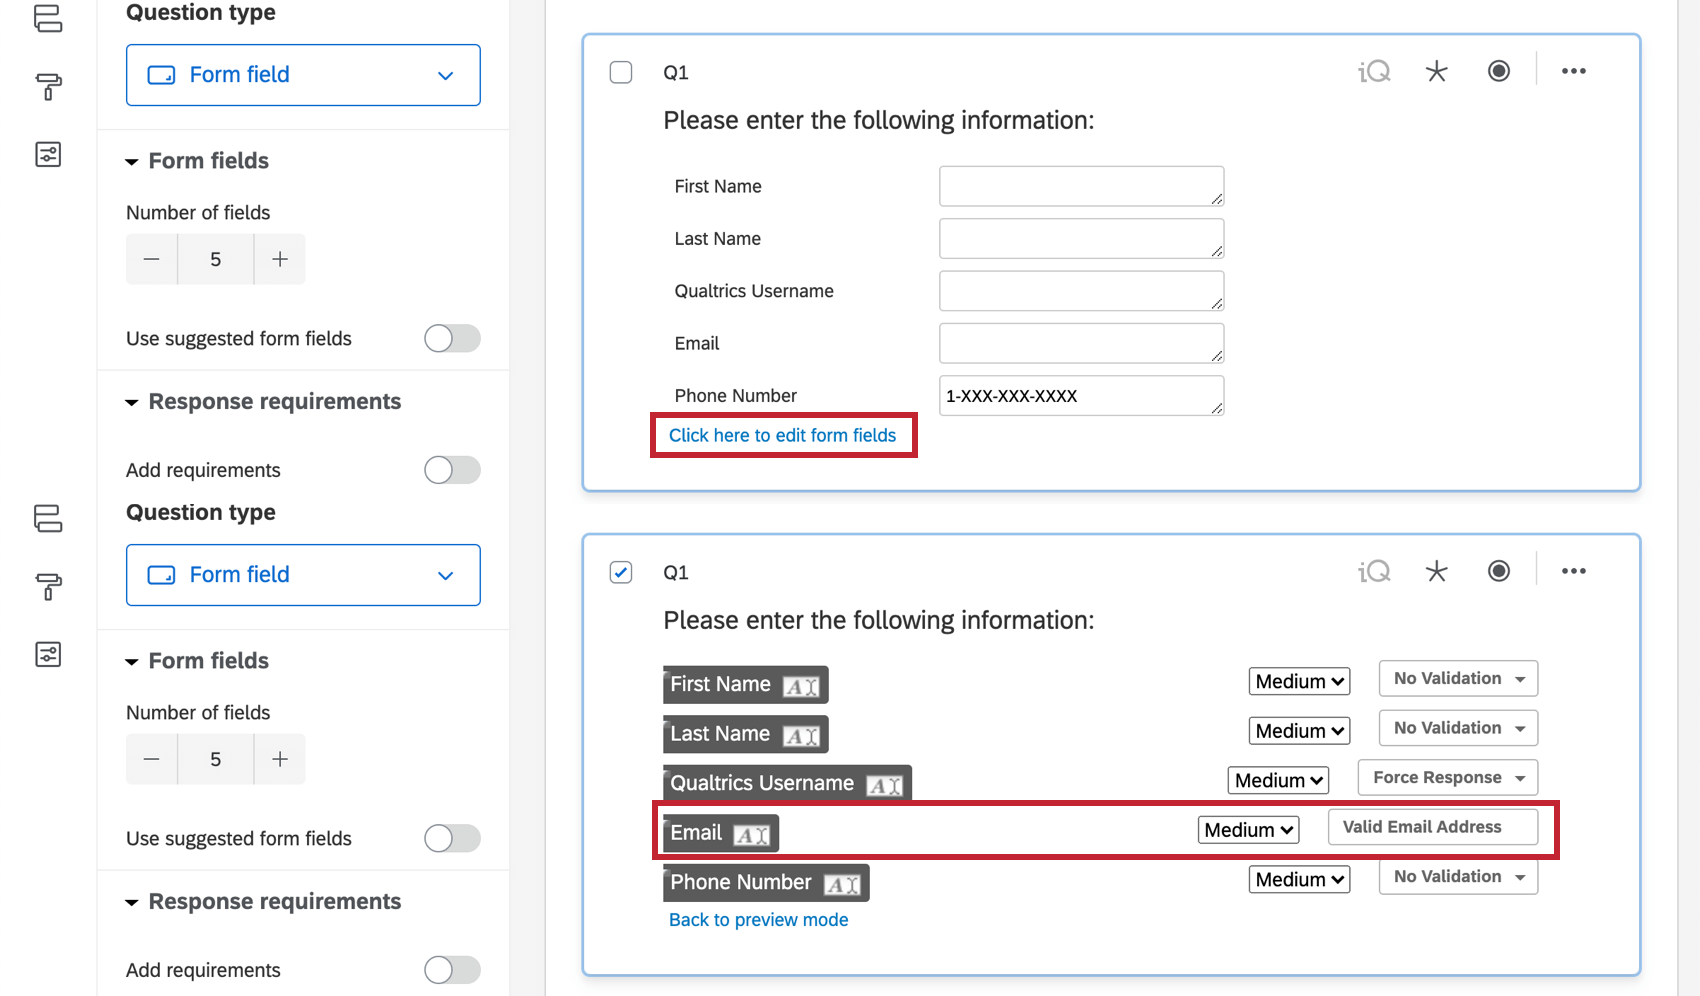 Setting content validation on a form